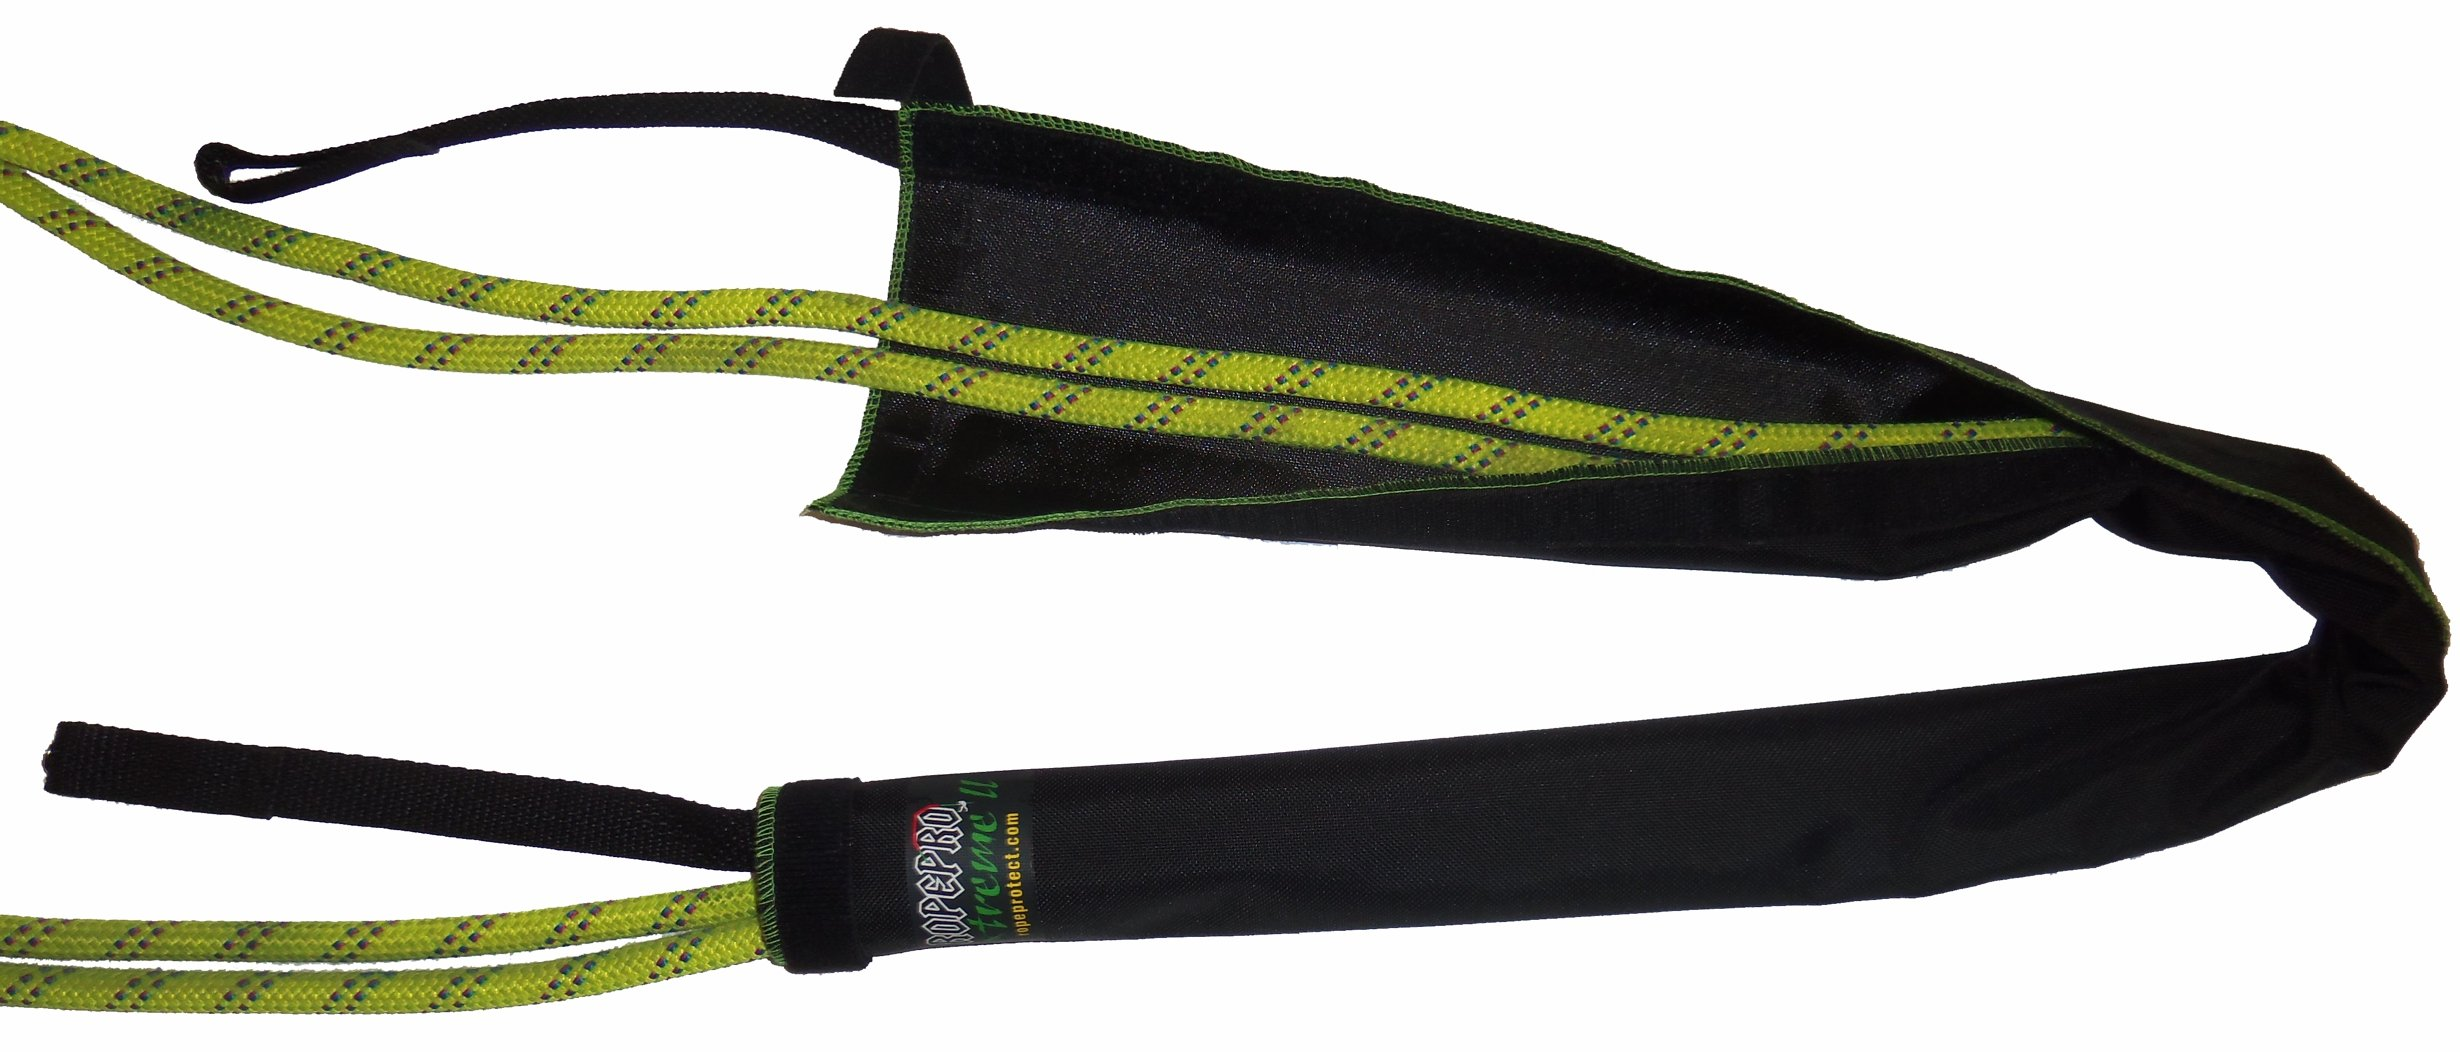 Rope Protector RopePro Extreme ll by RopePro